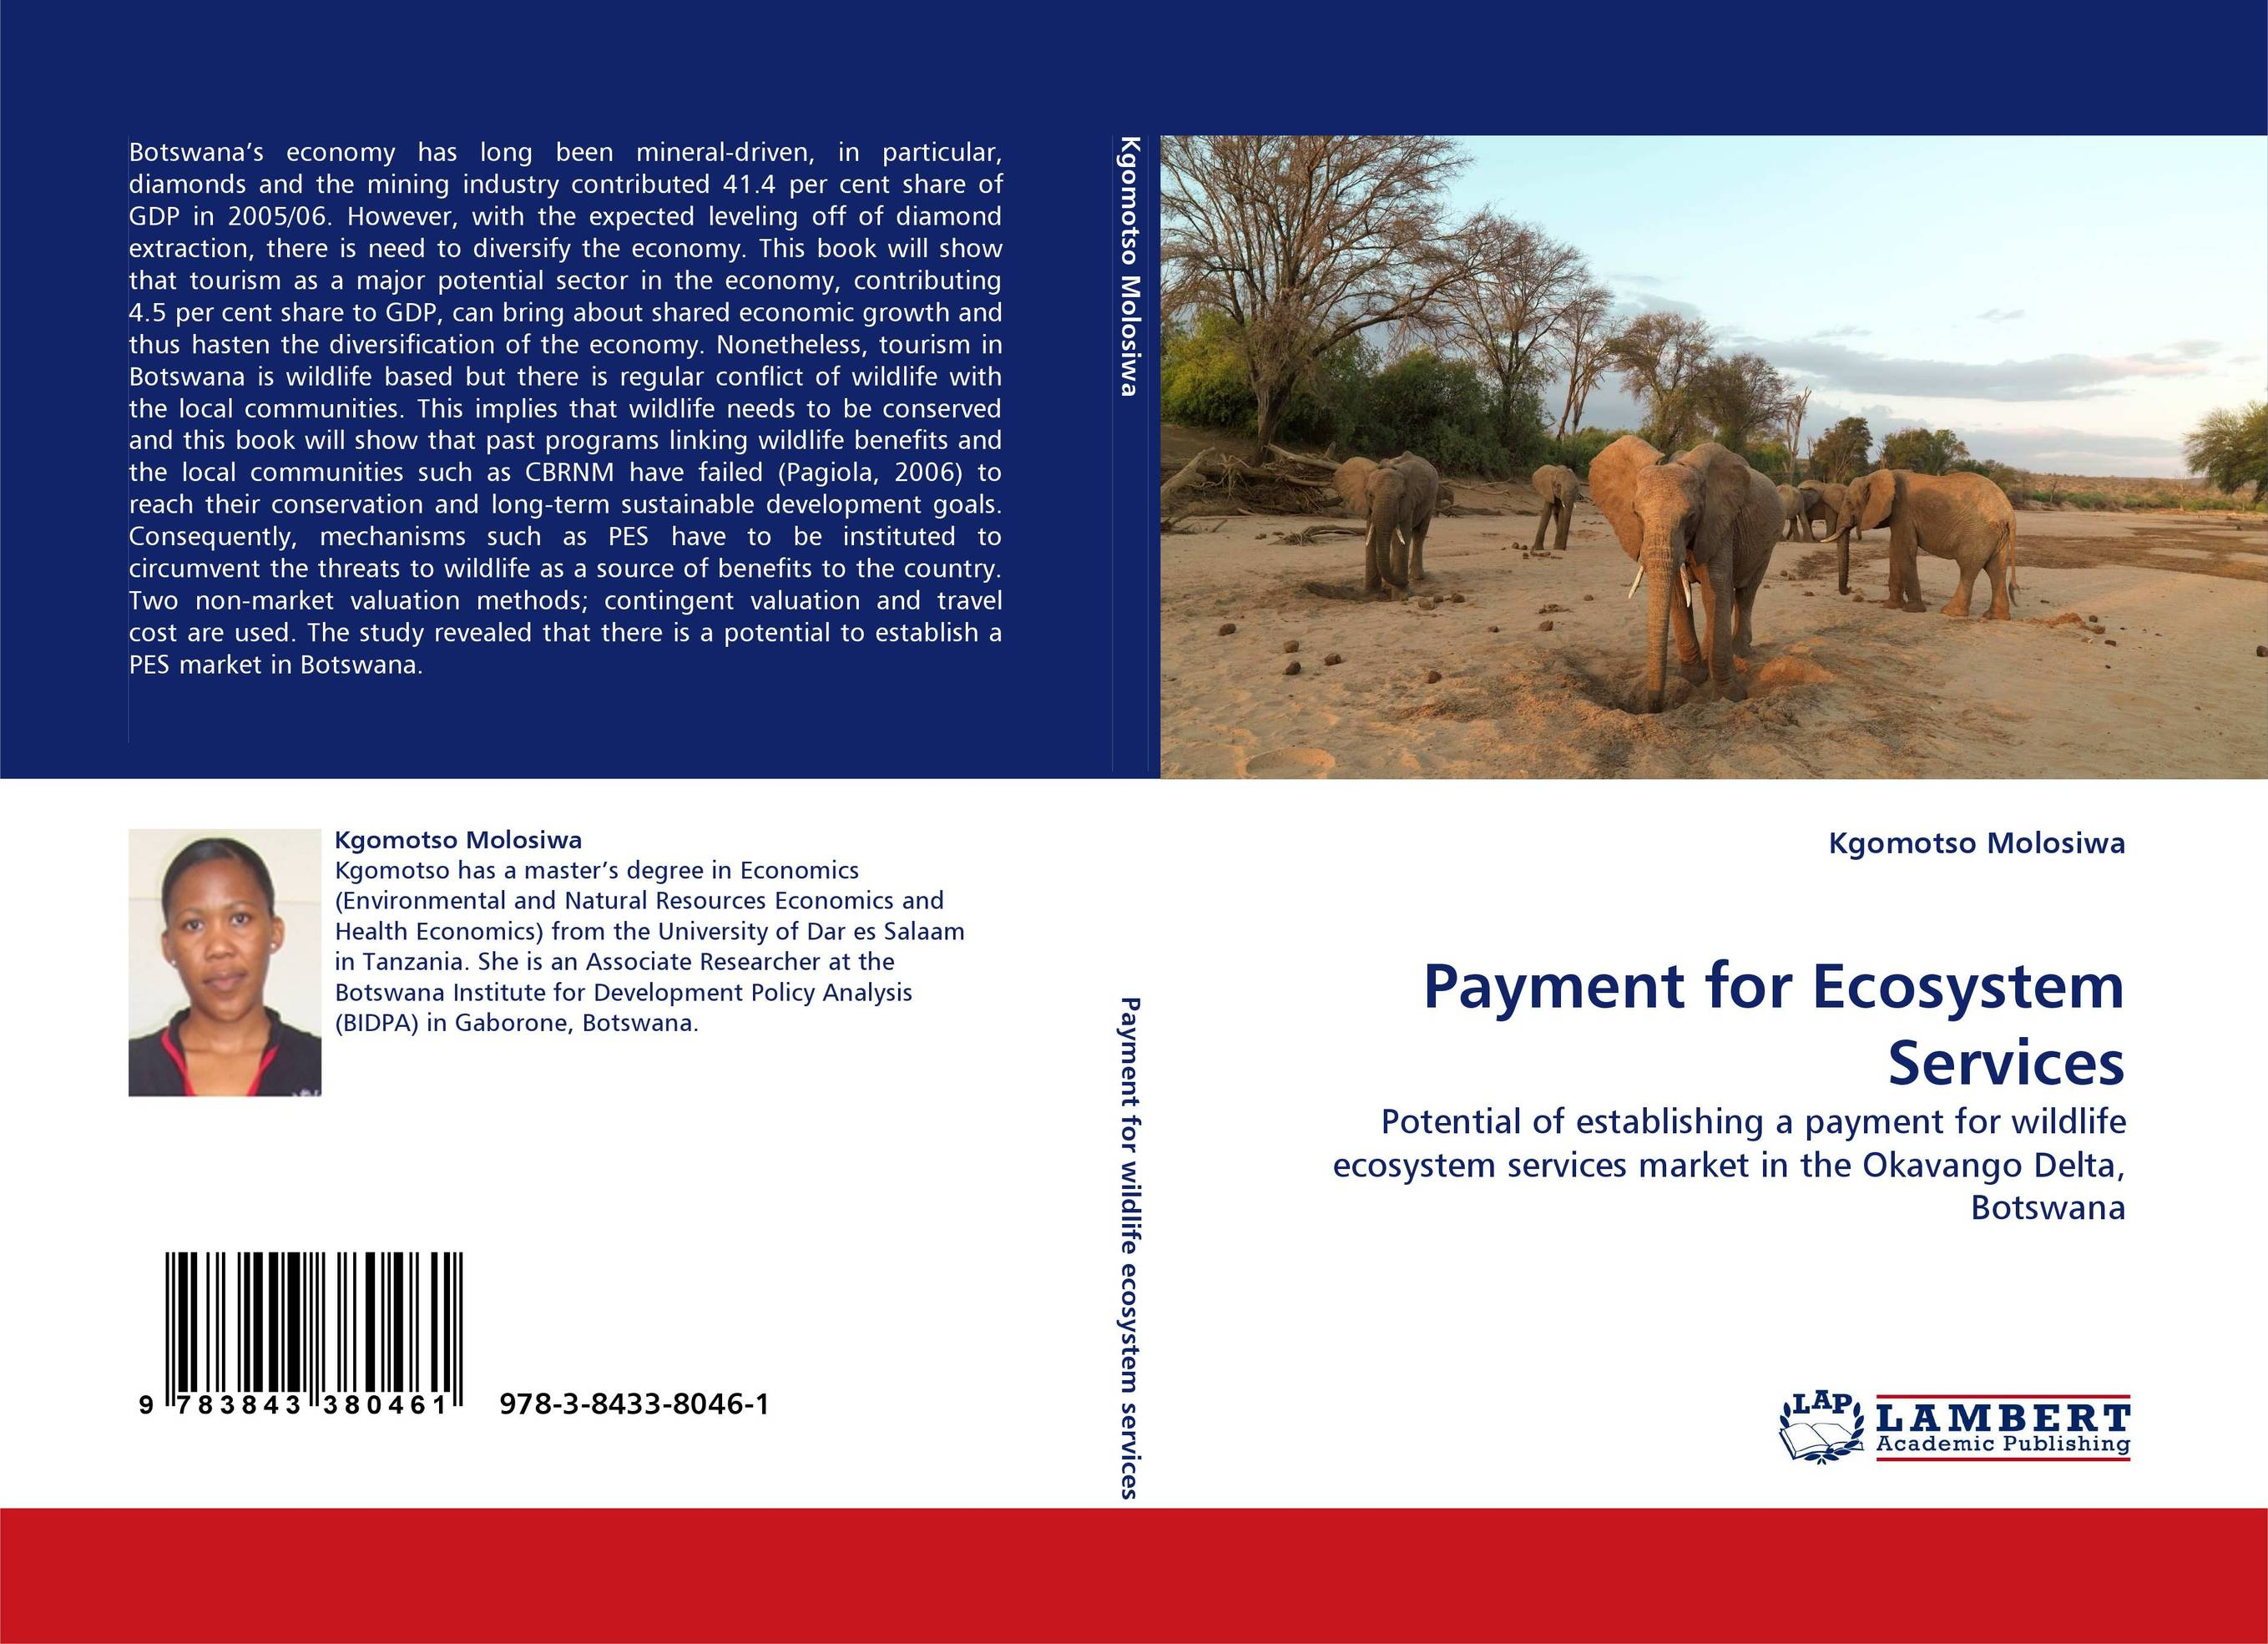 pes payment ecosystem services Types of pes scheme there are two broad types of pes scheme: public payment schemes through which government pays private land owners to maintain or enhance ecosystem services on behalf of the wider.